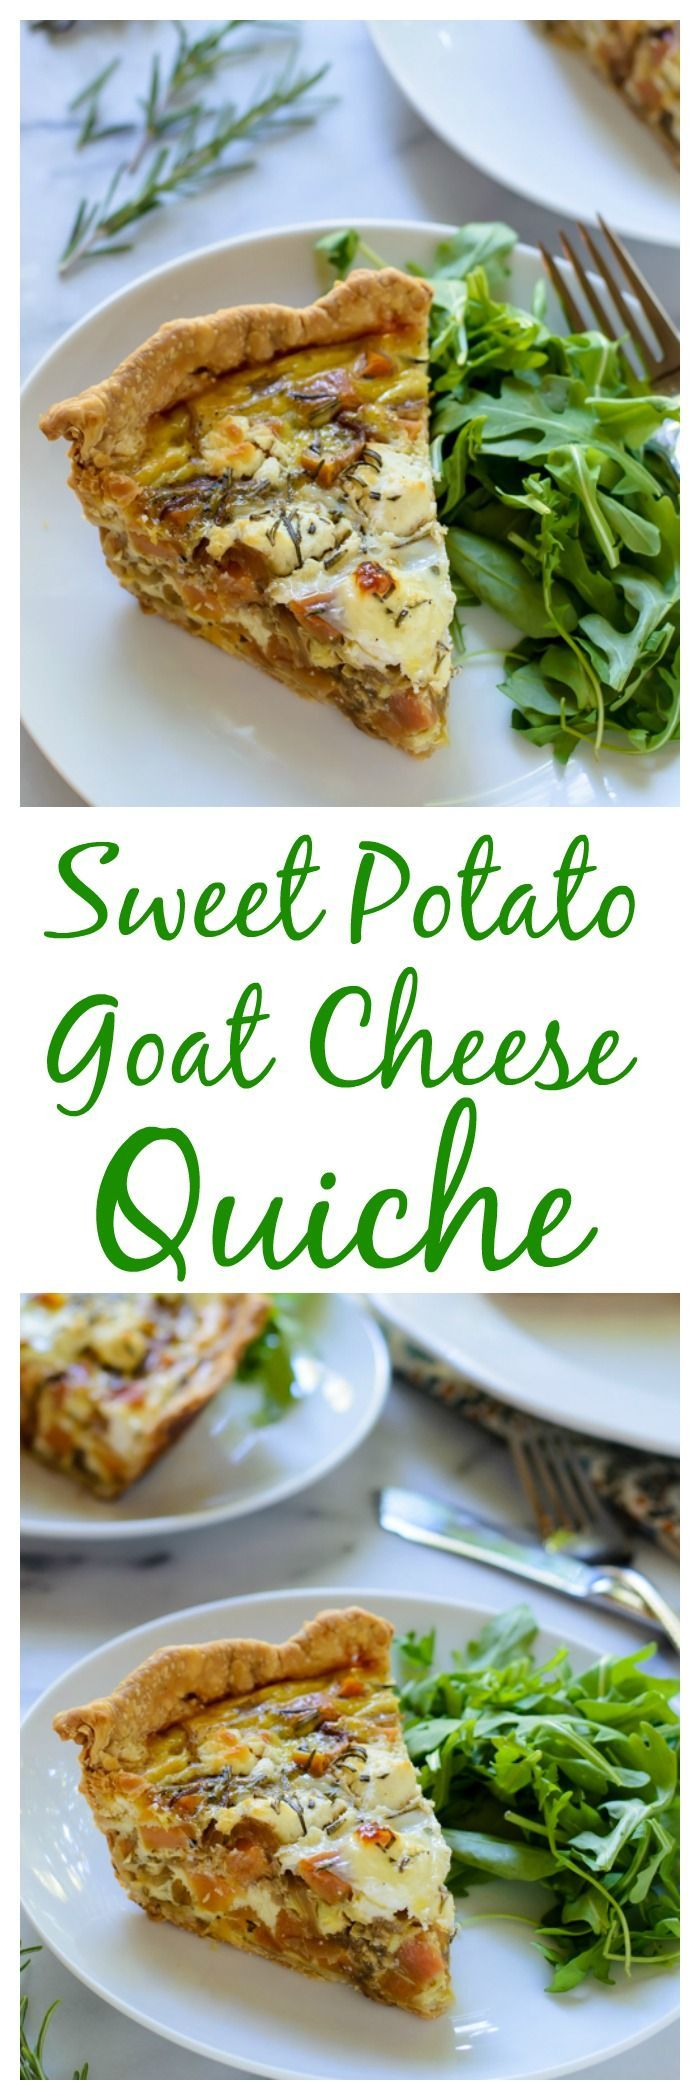 Sweet Potato Goat Cheese Quiche with Caramelized Onions and Rosemary ...